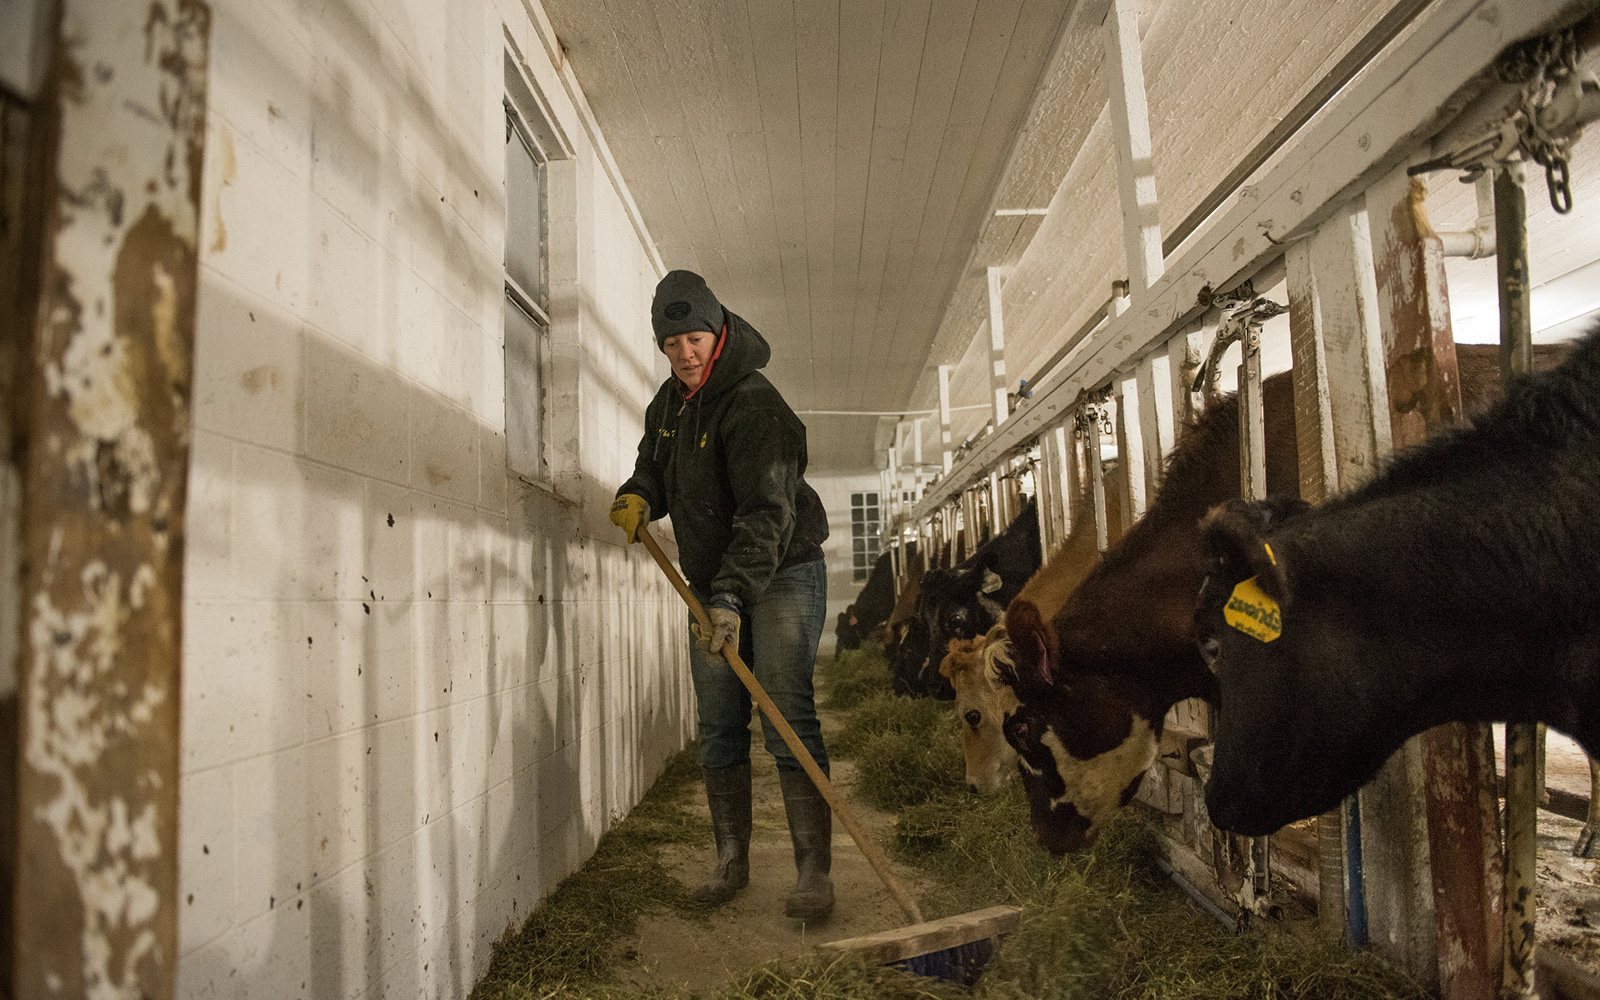 Amy Koenig gives her cows some hay during milking.